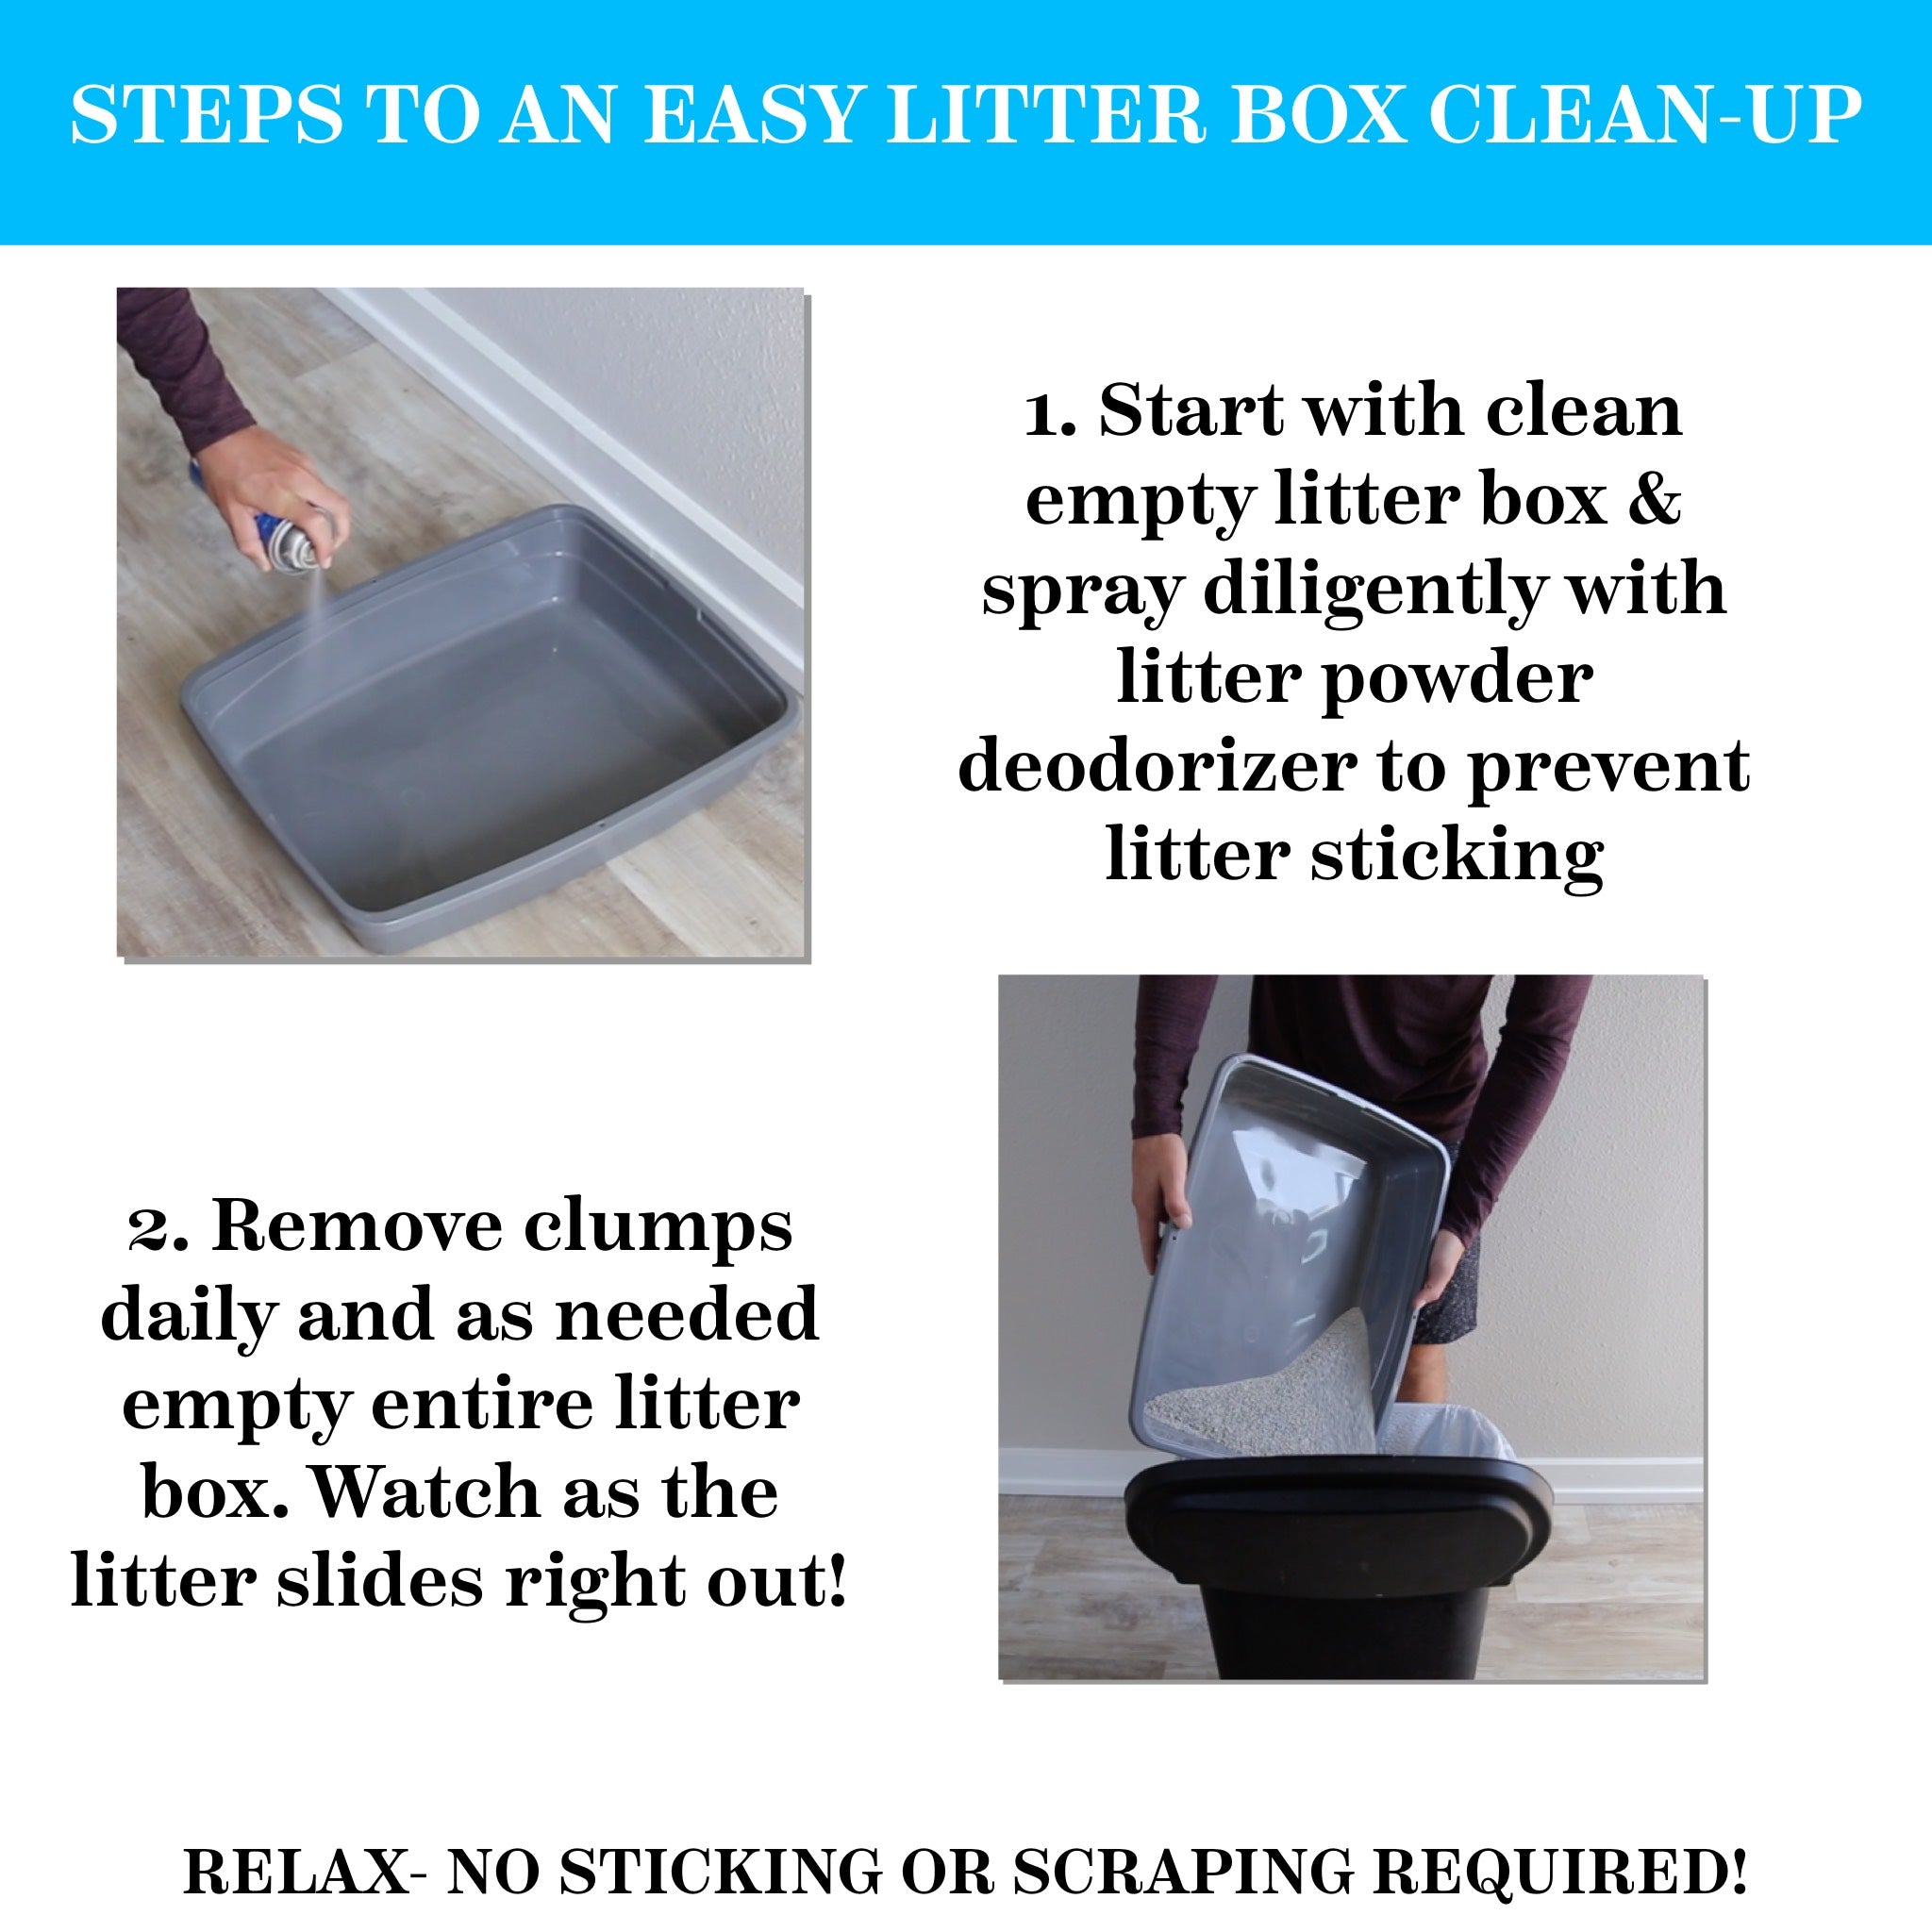 Cat Litter Box Deodorizer Powder Spray & Odor Eliminator - Non-Stick Kitty Litter Box Deodorizer